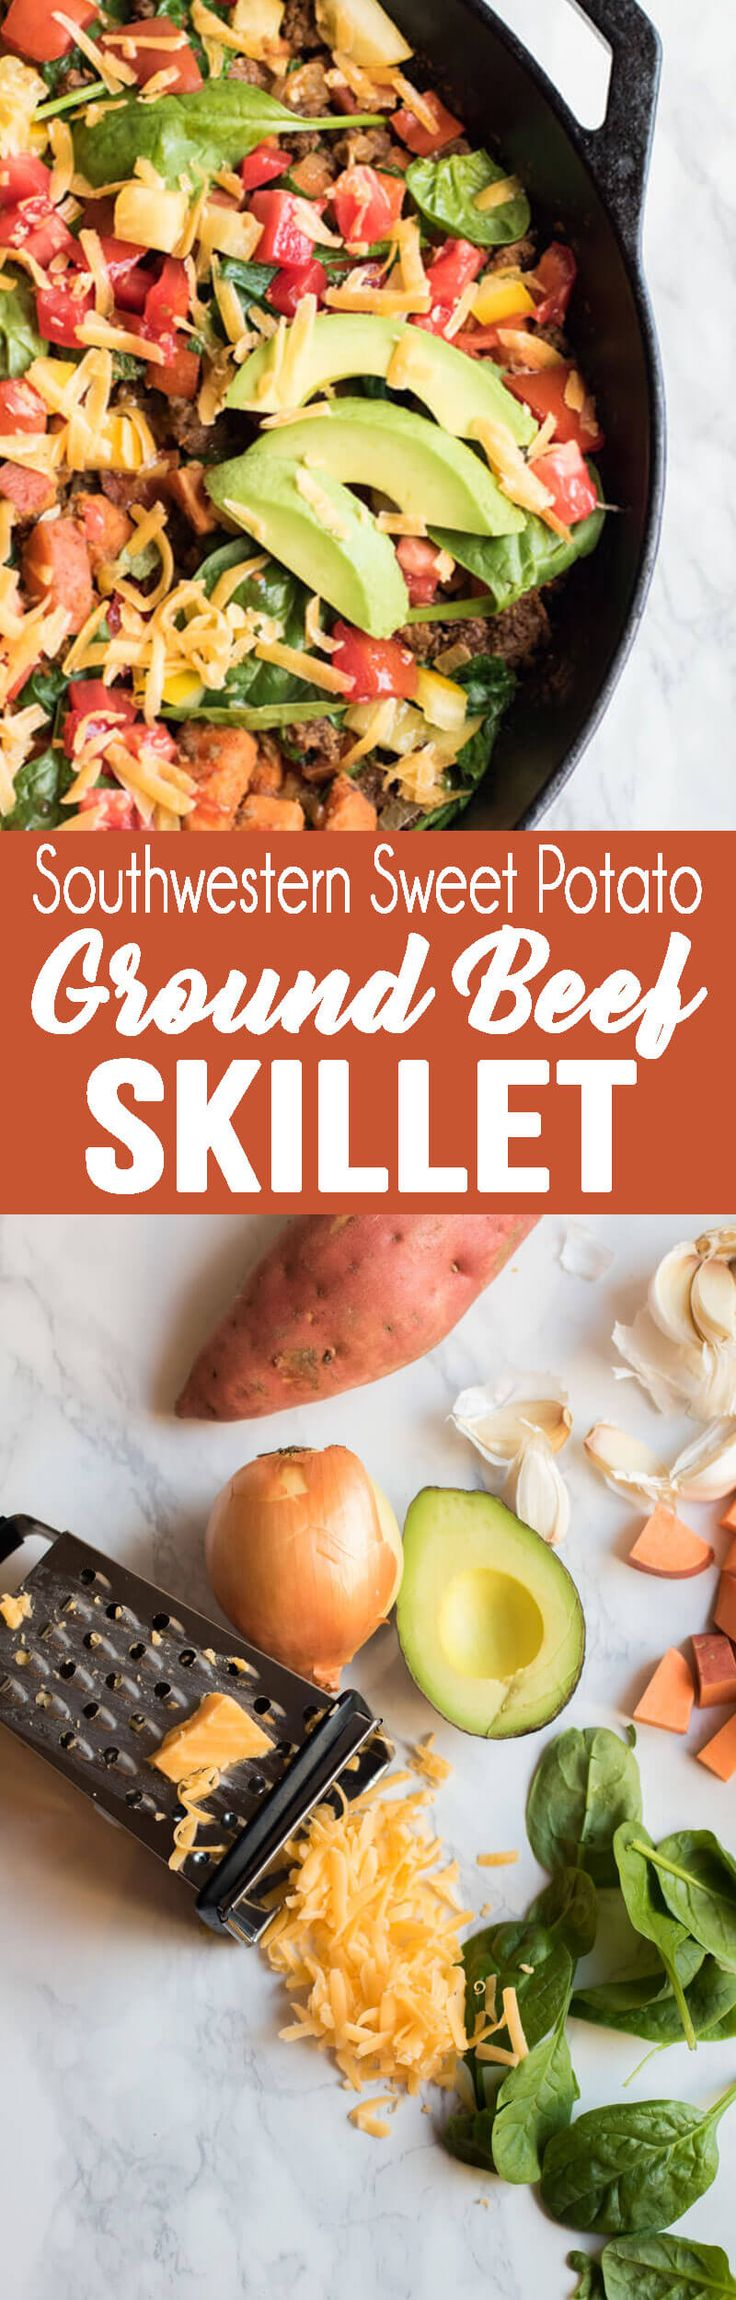 Southwestern Sweet Potato and Ground Beef Skillet via @Rachael Yerkes